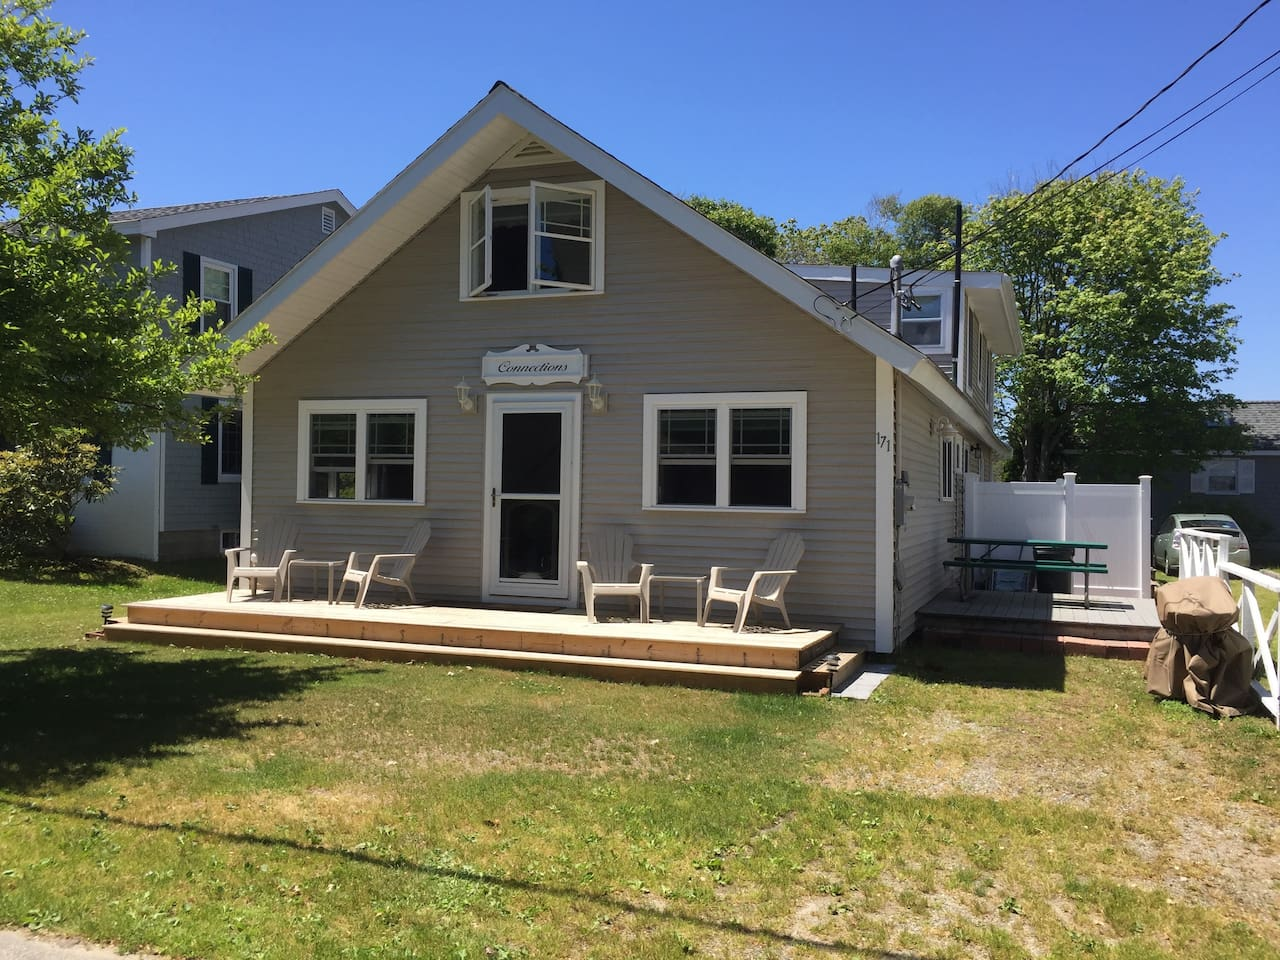 maine in beach cottage states for rooms united moody wells rent cottages